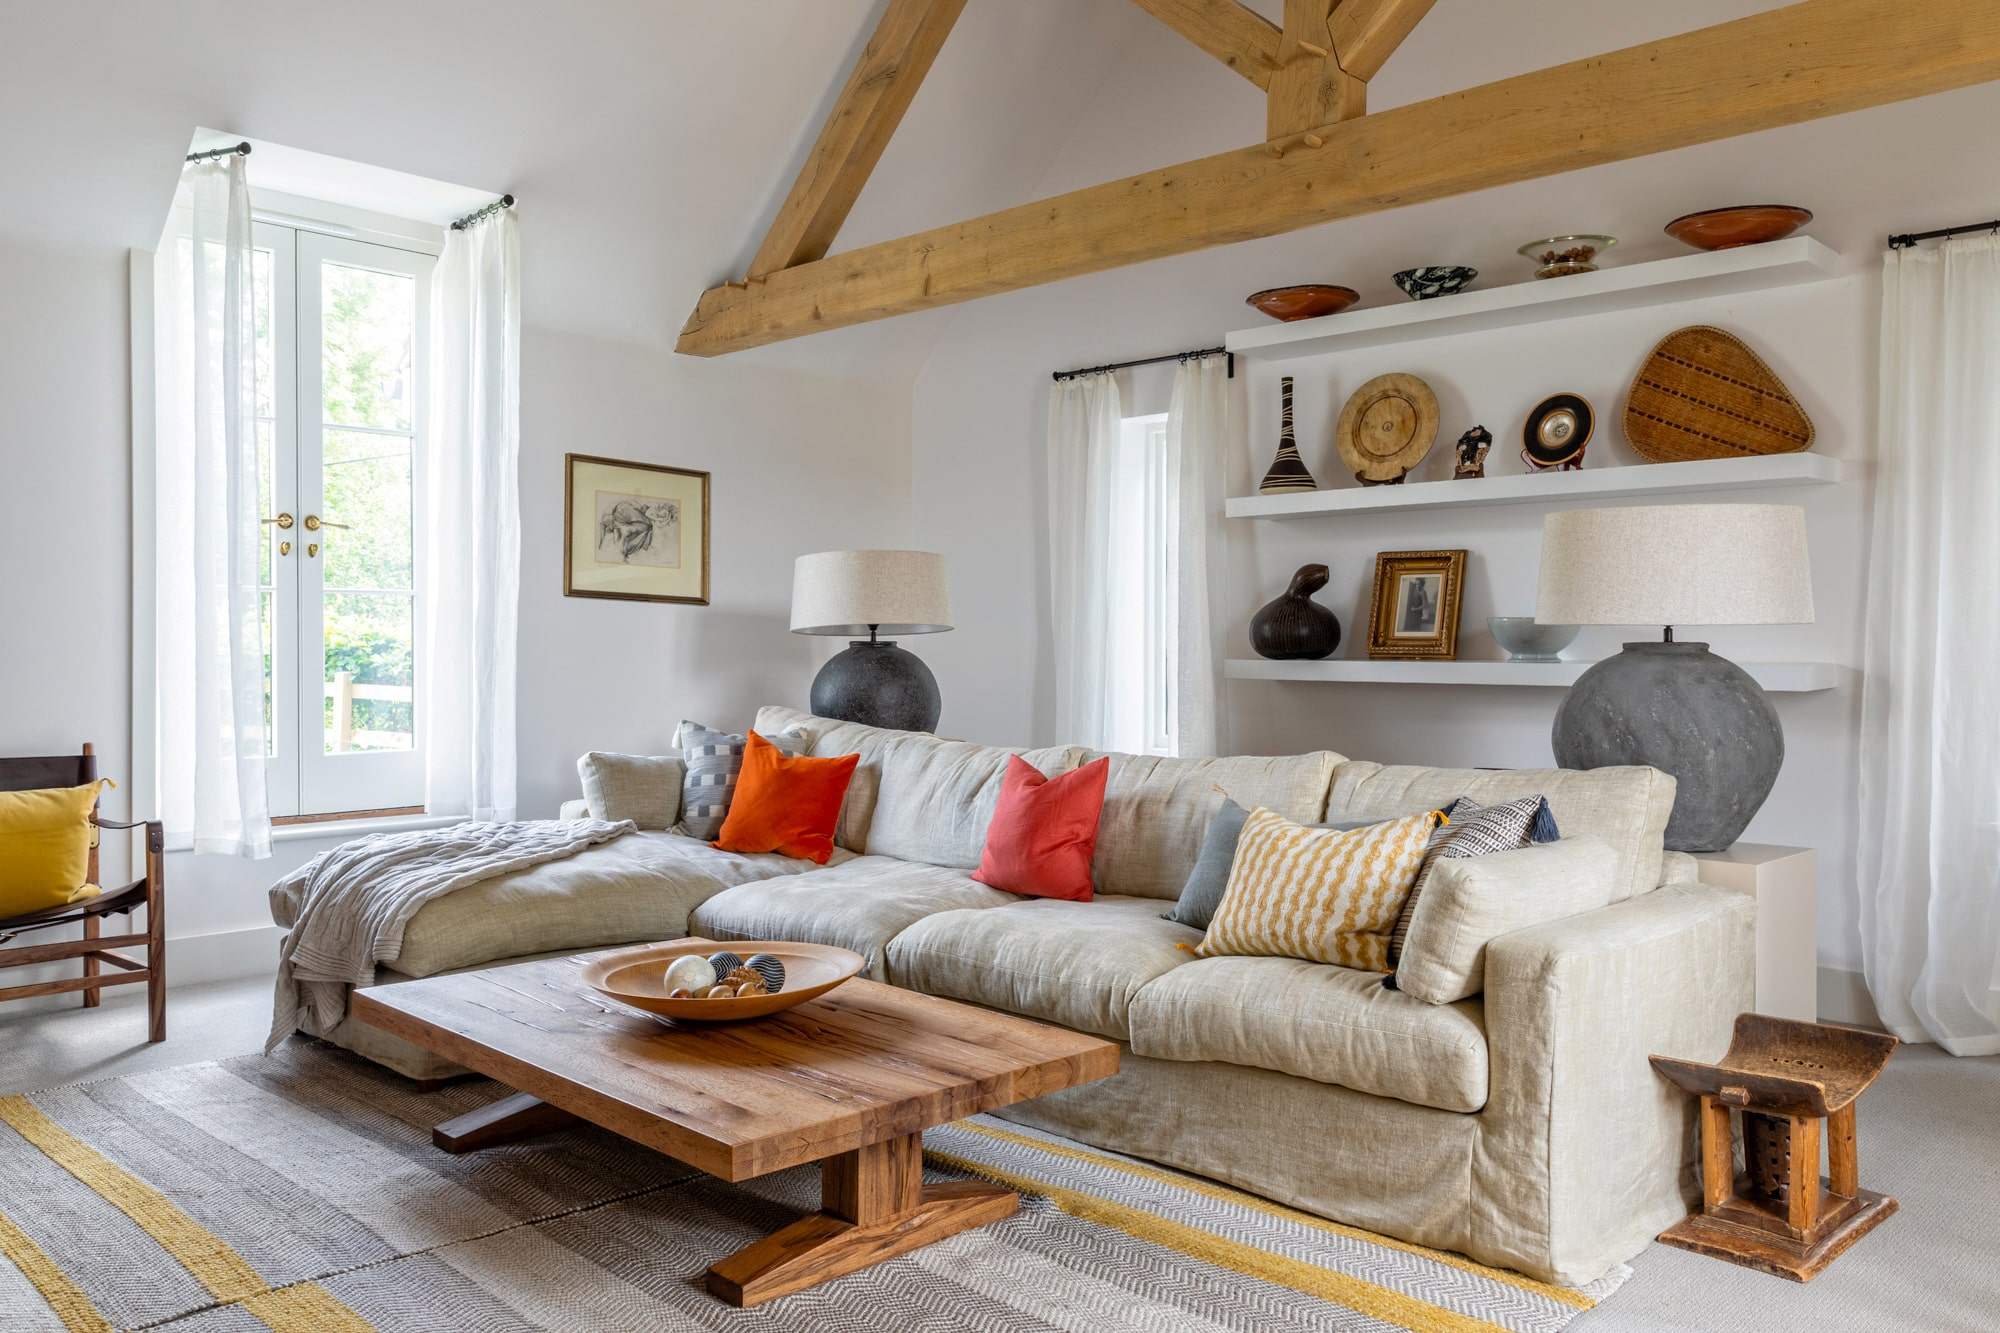 Interior photography of a country house: living room detail, a grey sofa with pillows; white shelves with cute accessories; a wooden coffee table